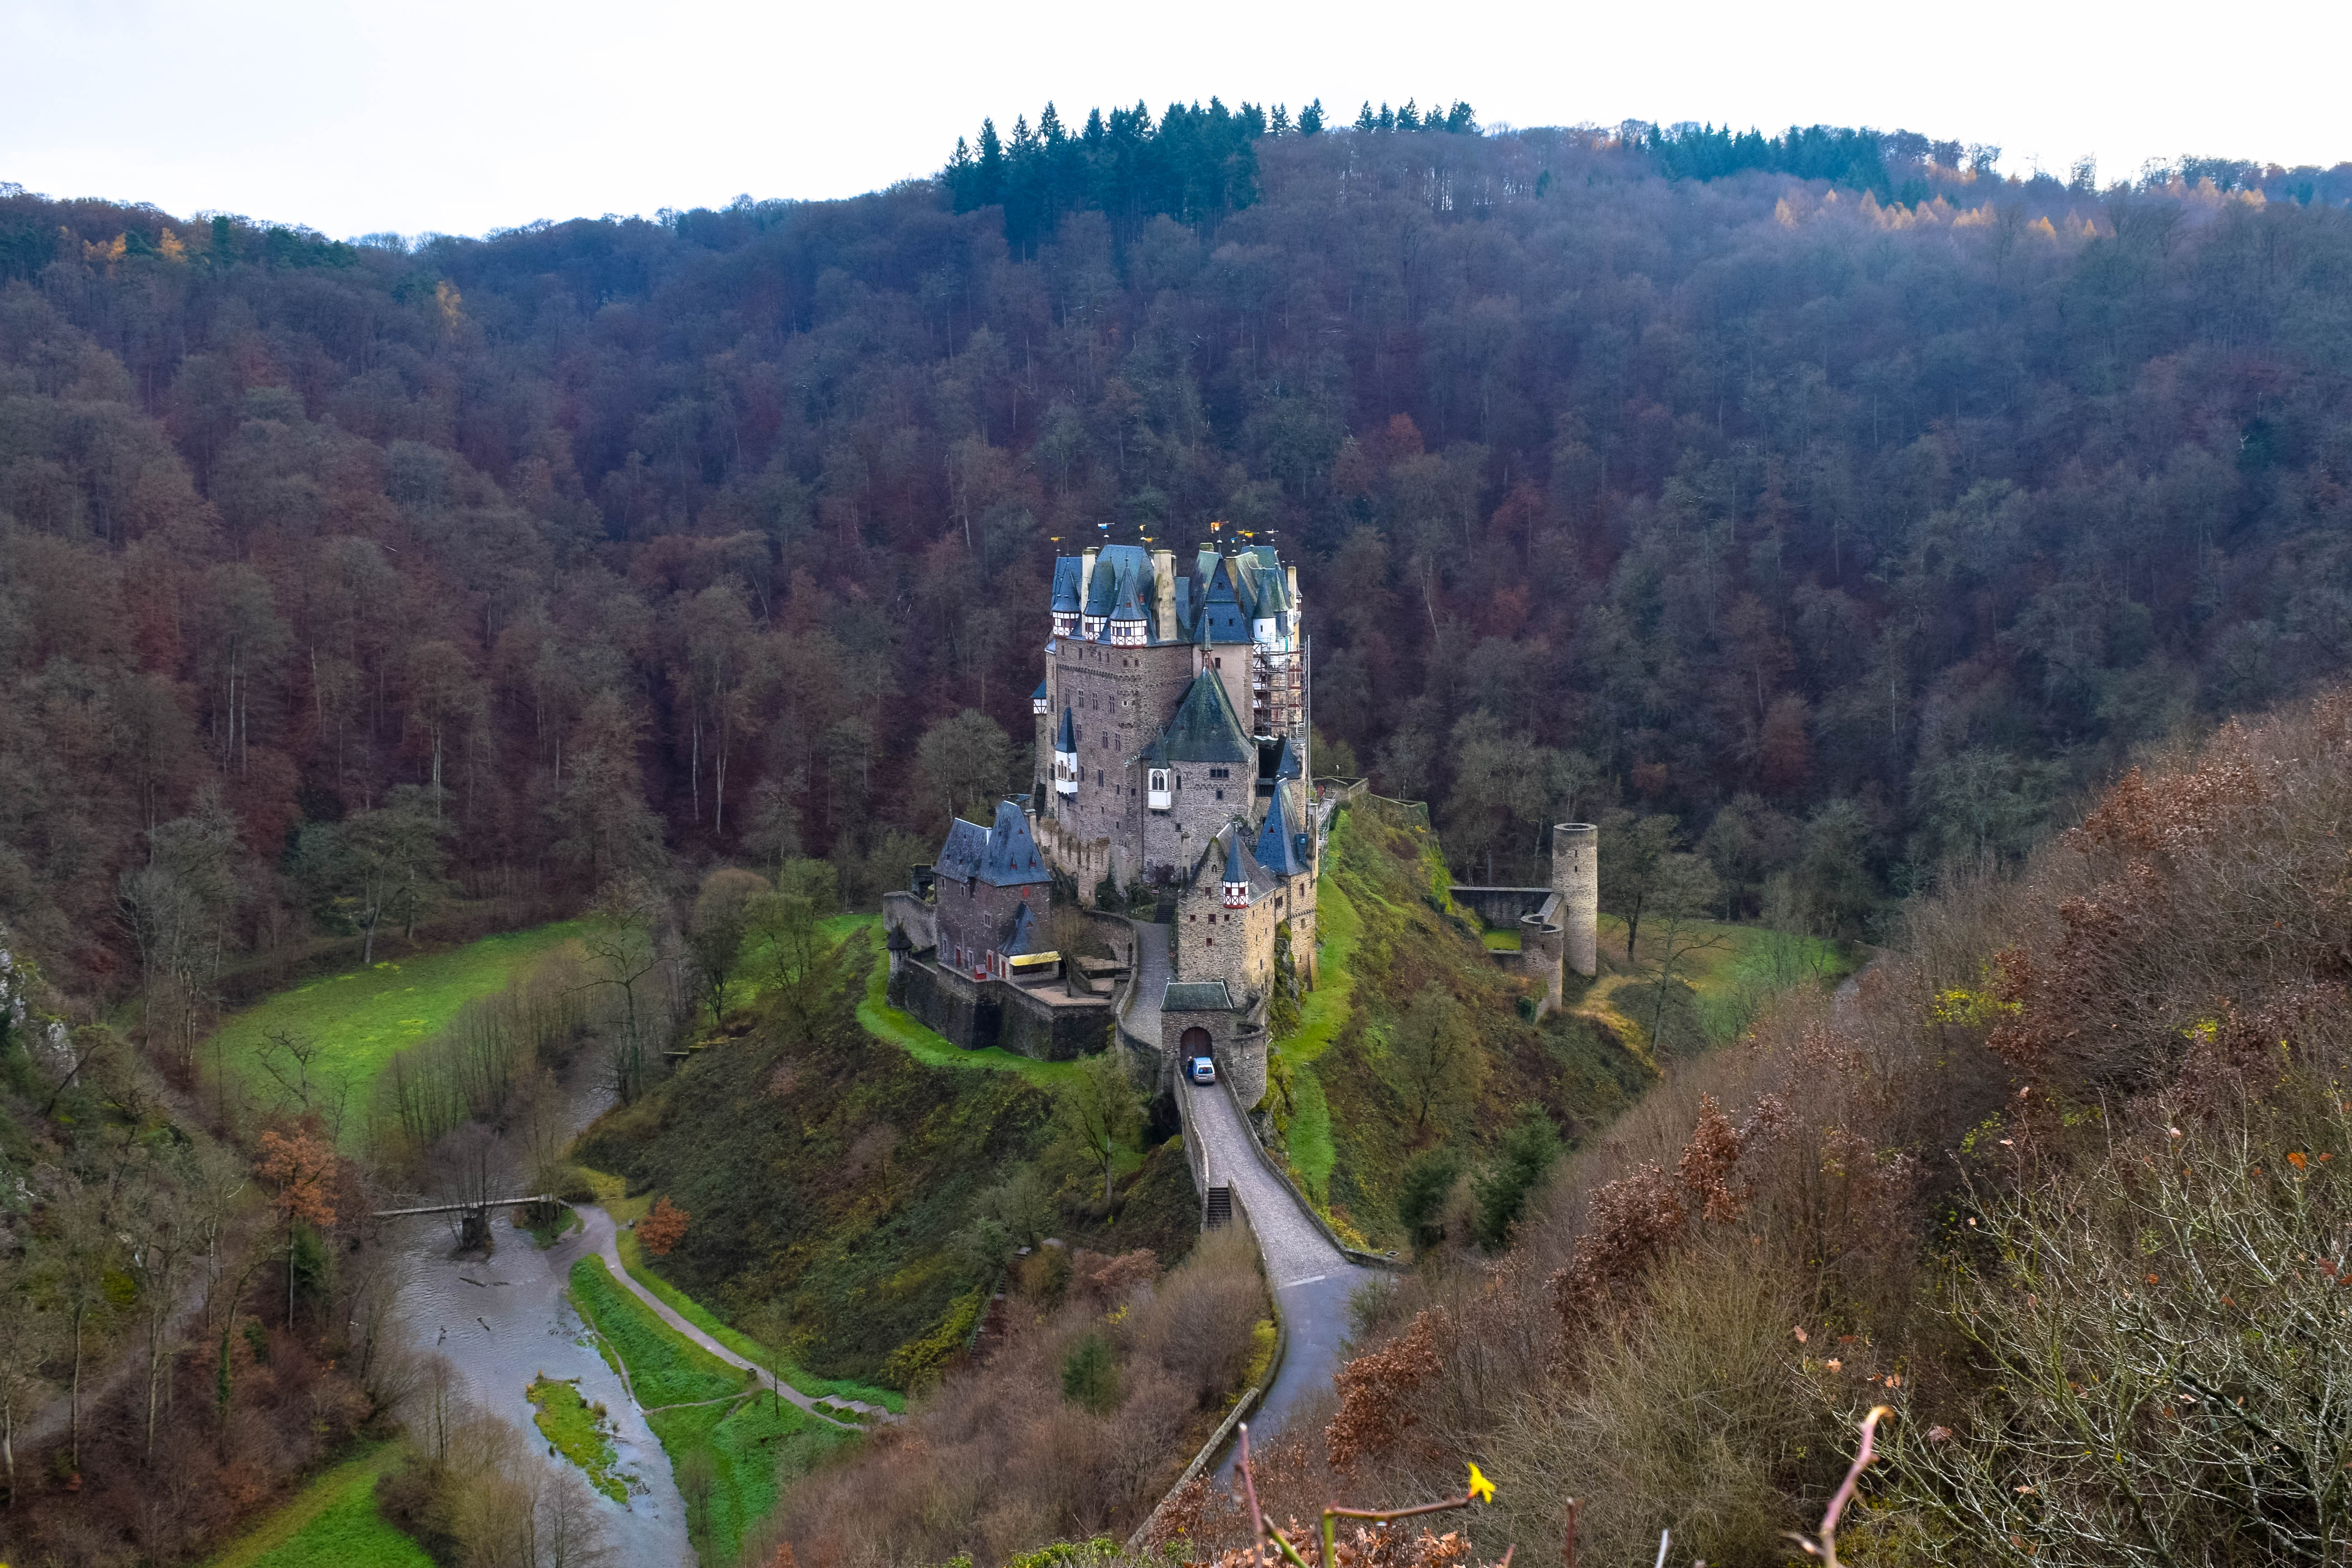 Burg Eltz Castle as seen from above looking down into the hills